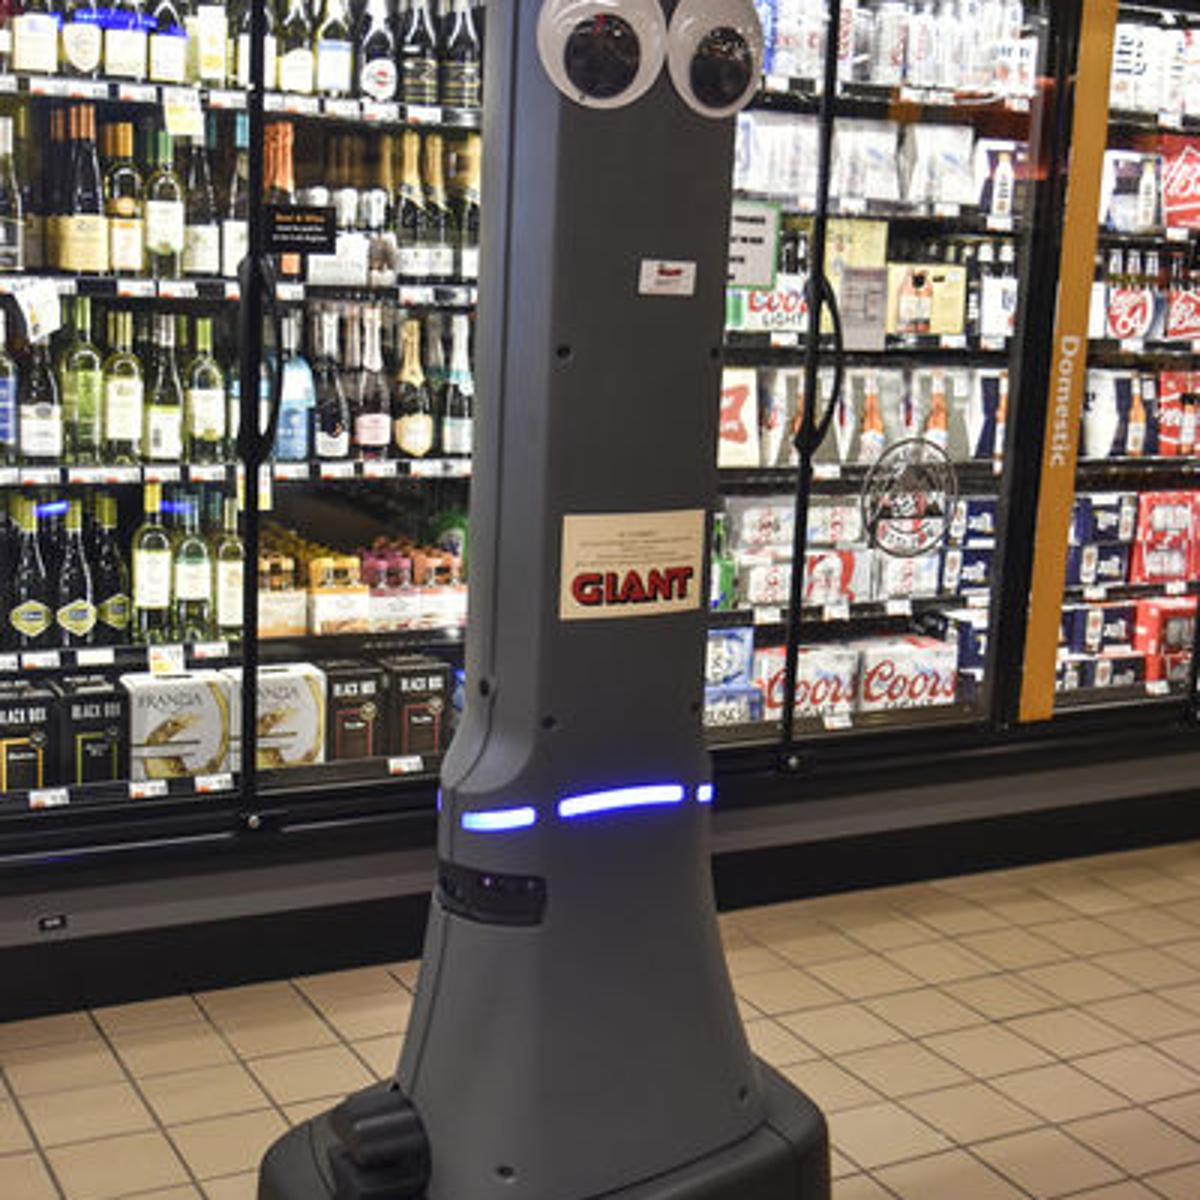 Robotic assistant joining Giant Food Stores team | Snyder